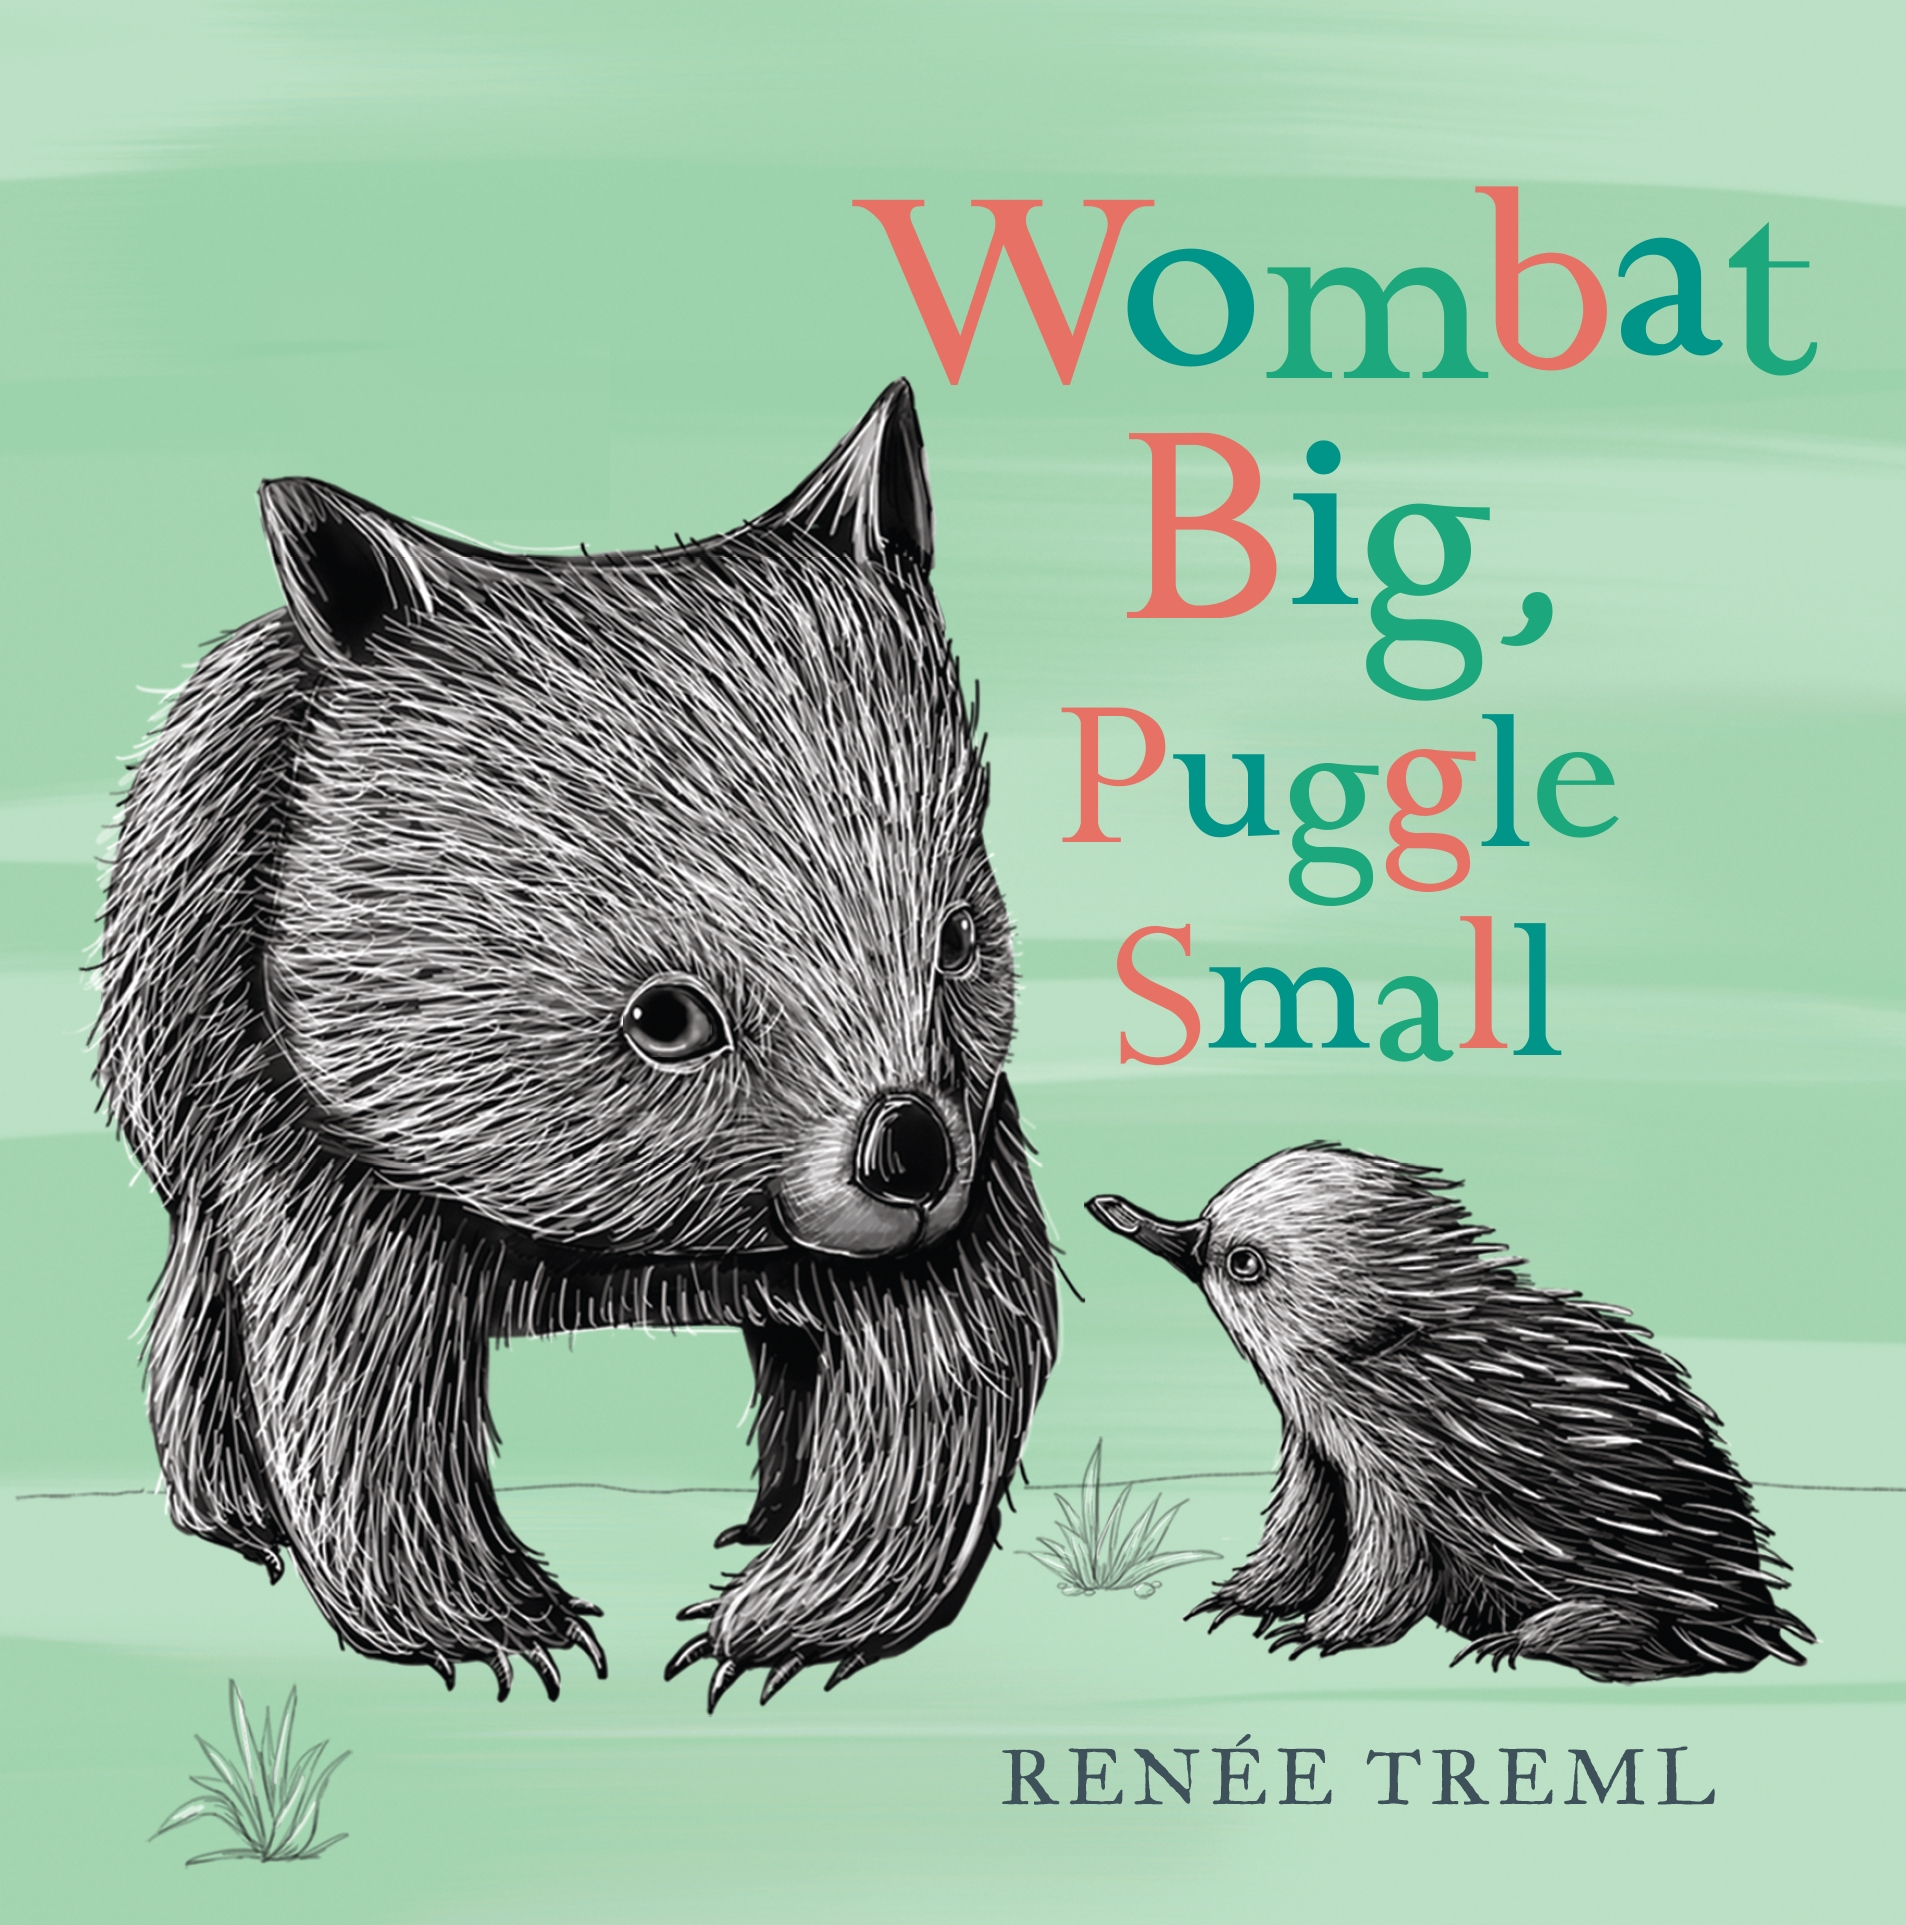 Wombat Big, Puggle Small